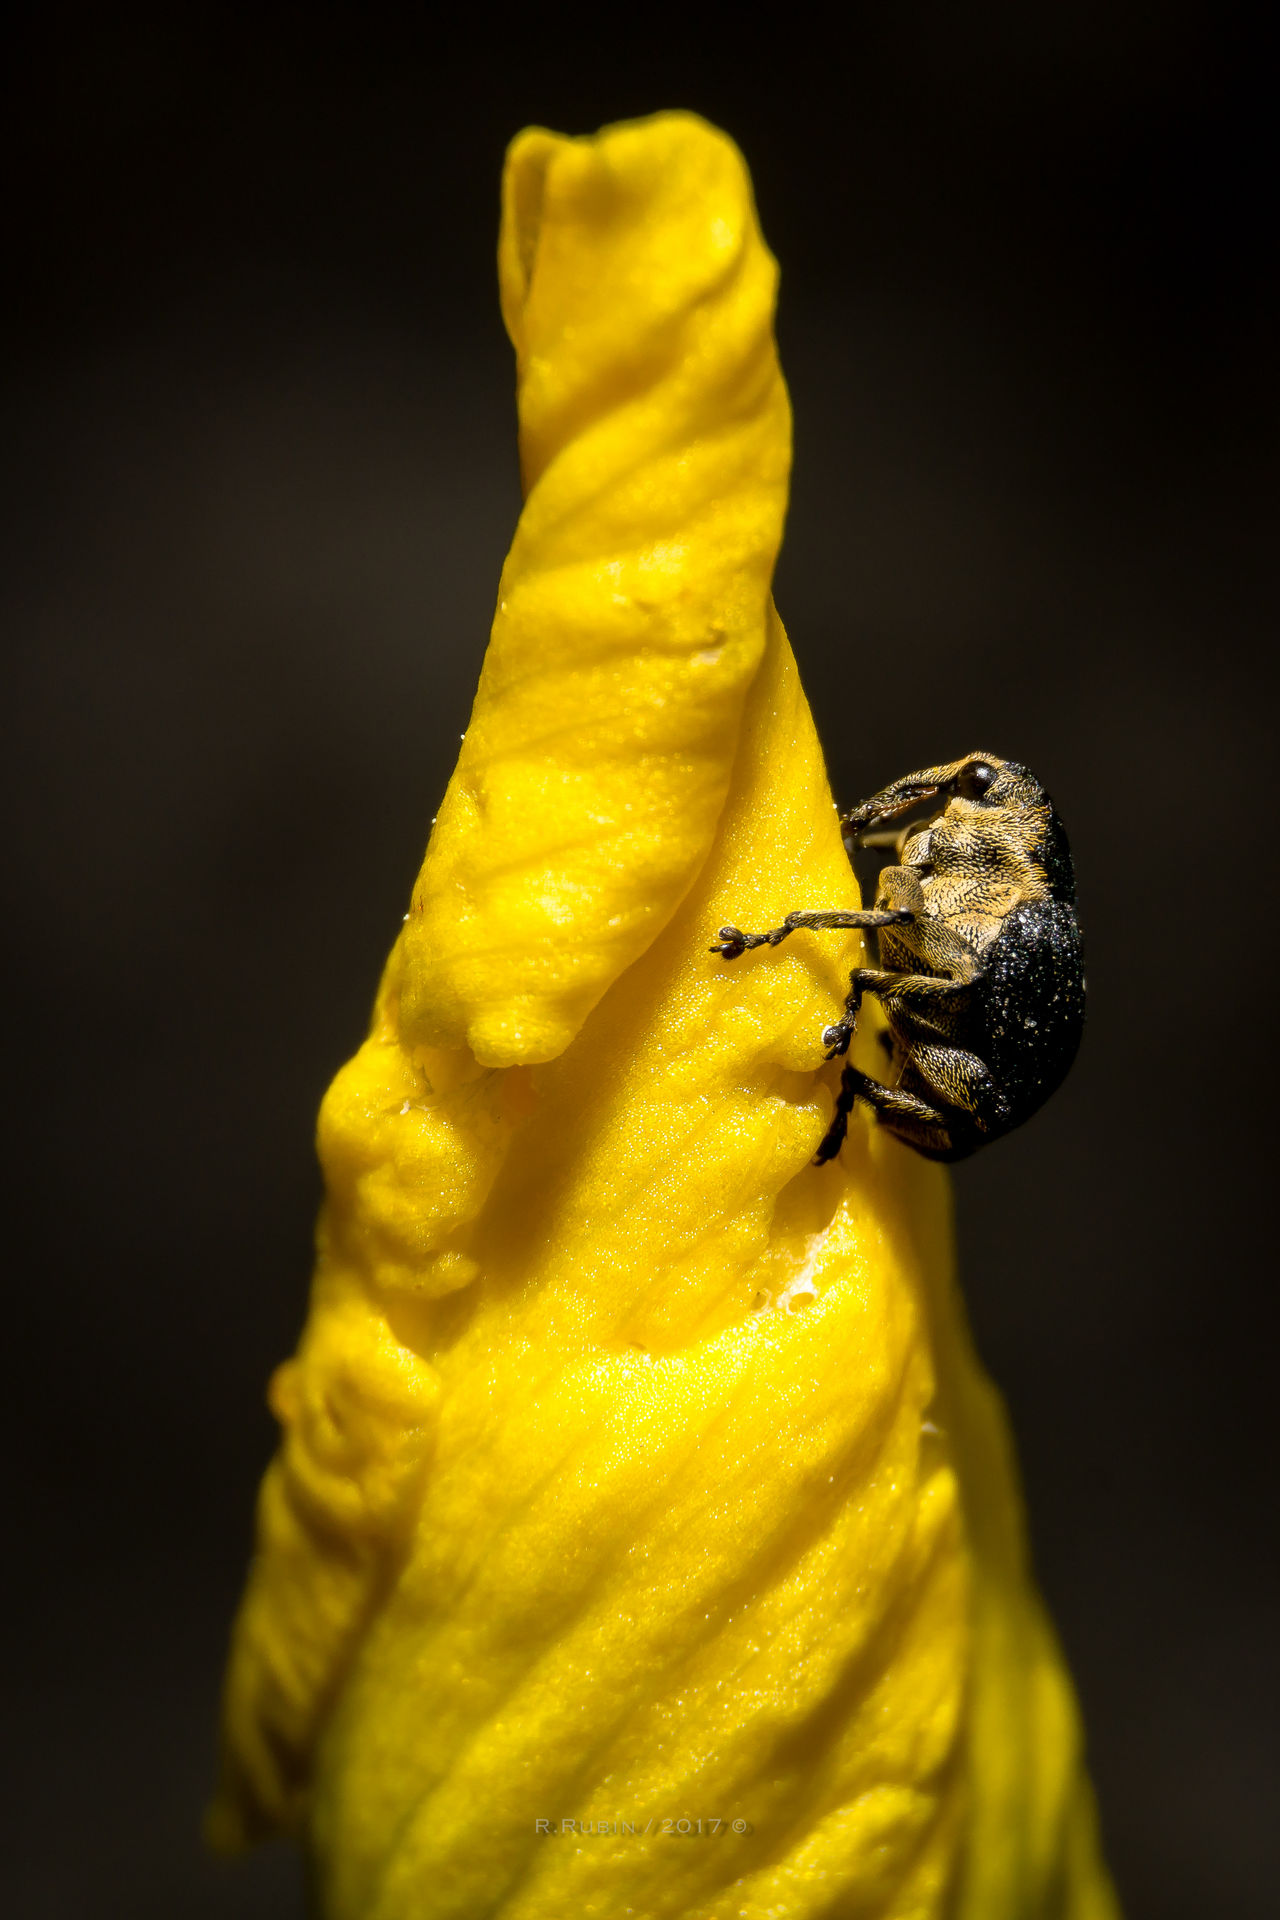 Yellow Insect No People Flower Close-up Animal Themes Black Background Nature Freshness Day Outdoors Art Is Everywhere Insect Photography Insect Macro  Macro Macrophotography Animal Beetle One Animal Plant Growth Fragility